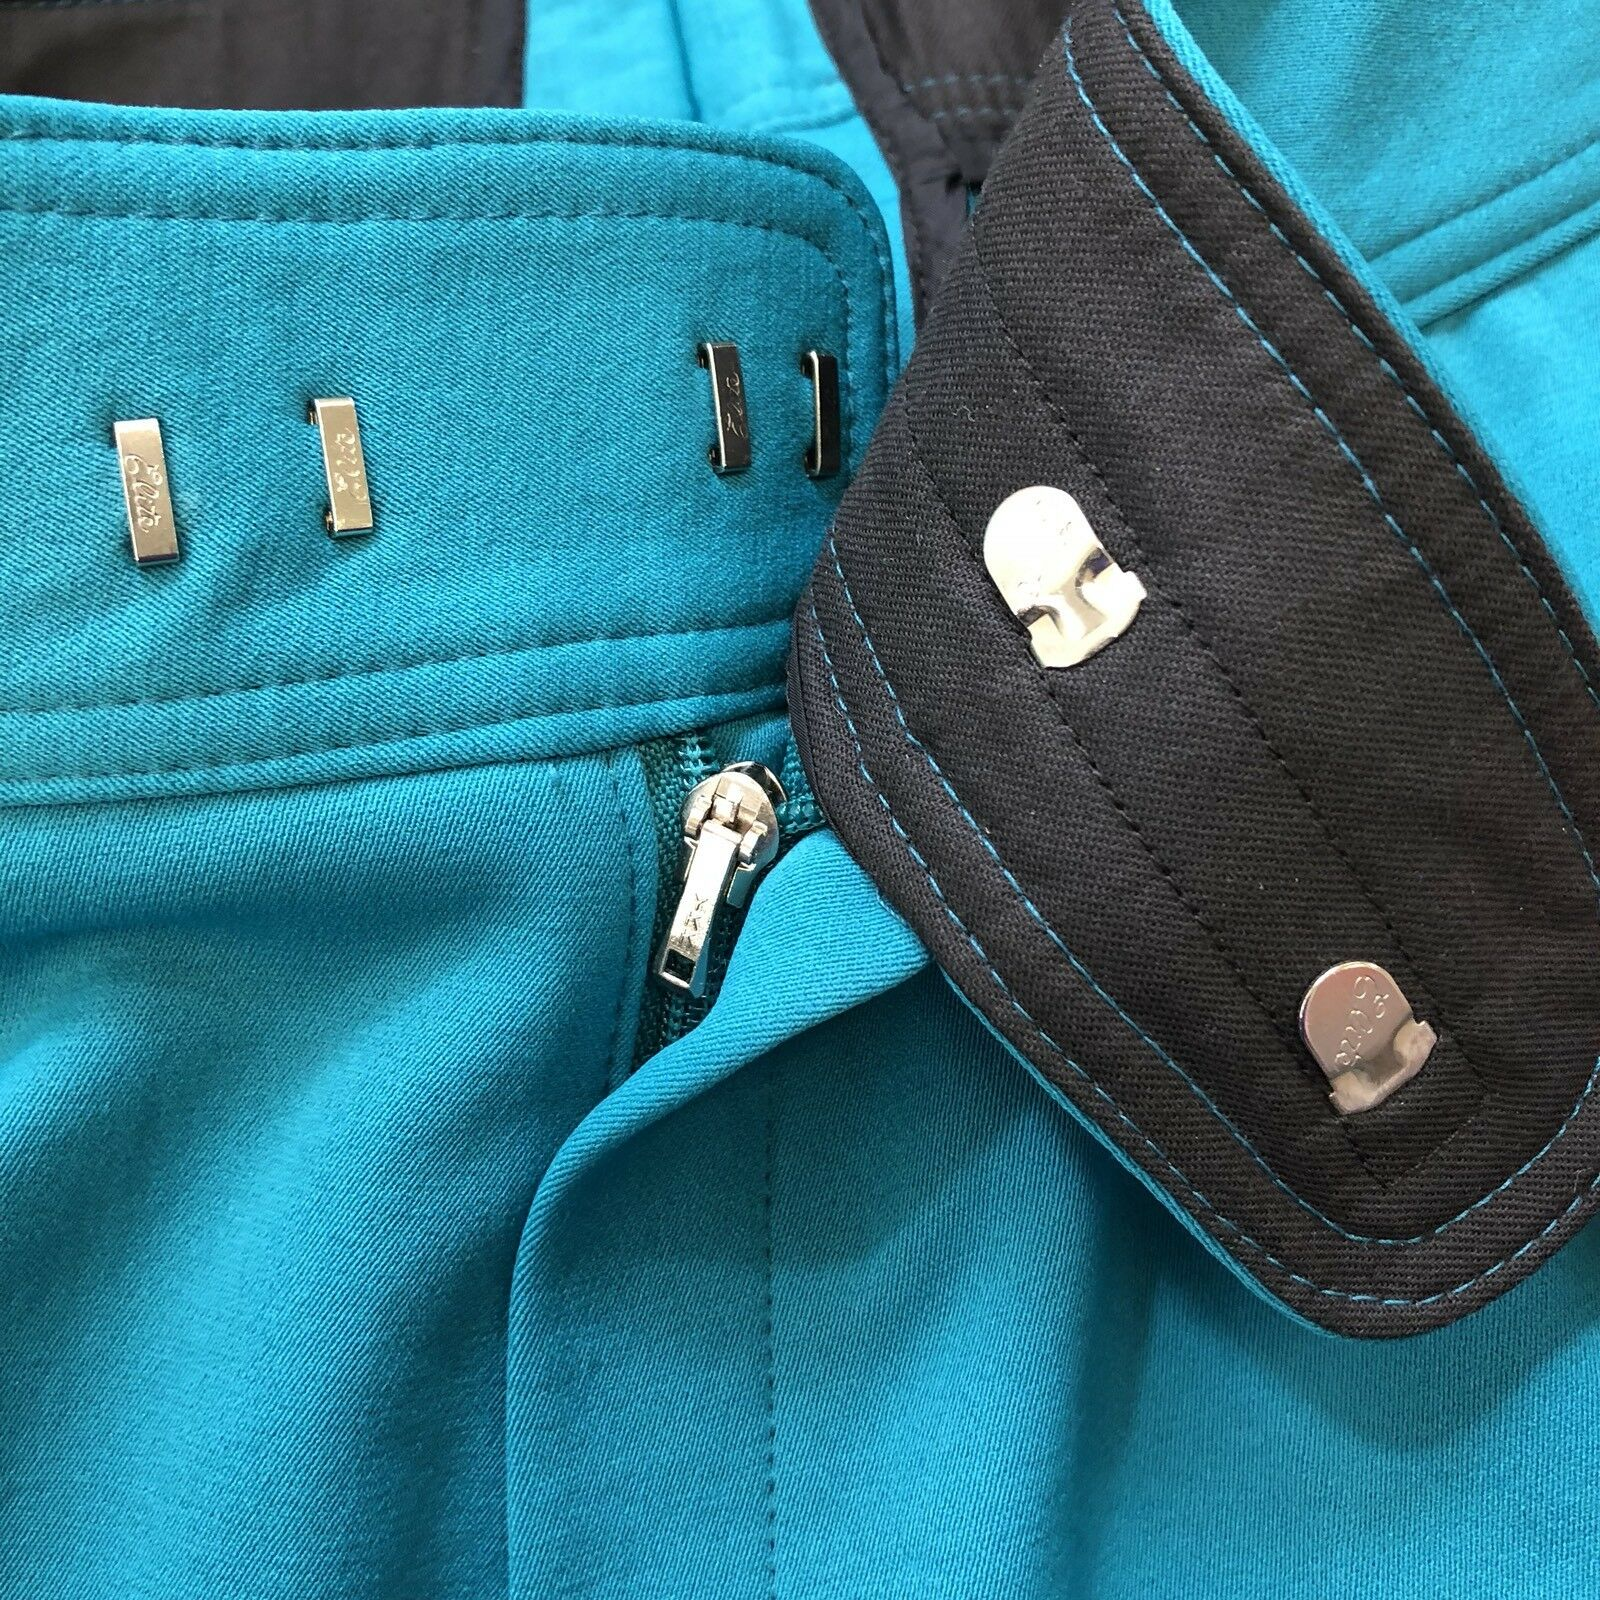 Schoeller 10 Vintage Damenschuhe 10 Schoeller Regular Ski Pants Teal Stirrup Foot Made in USA 6ab1d8